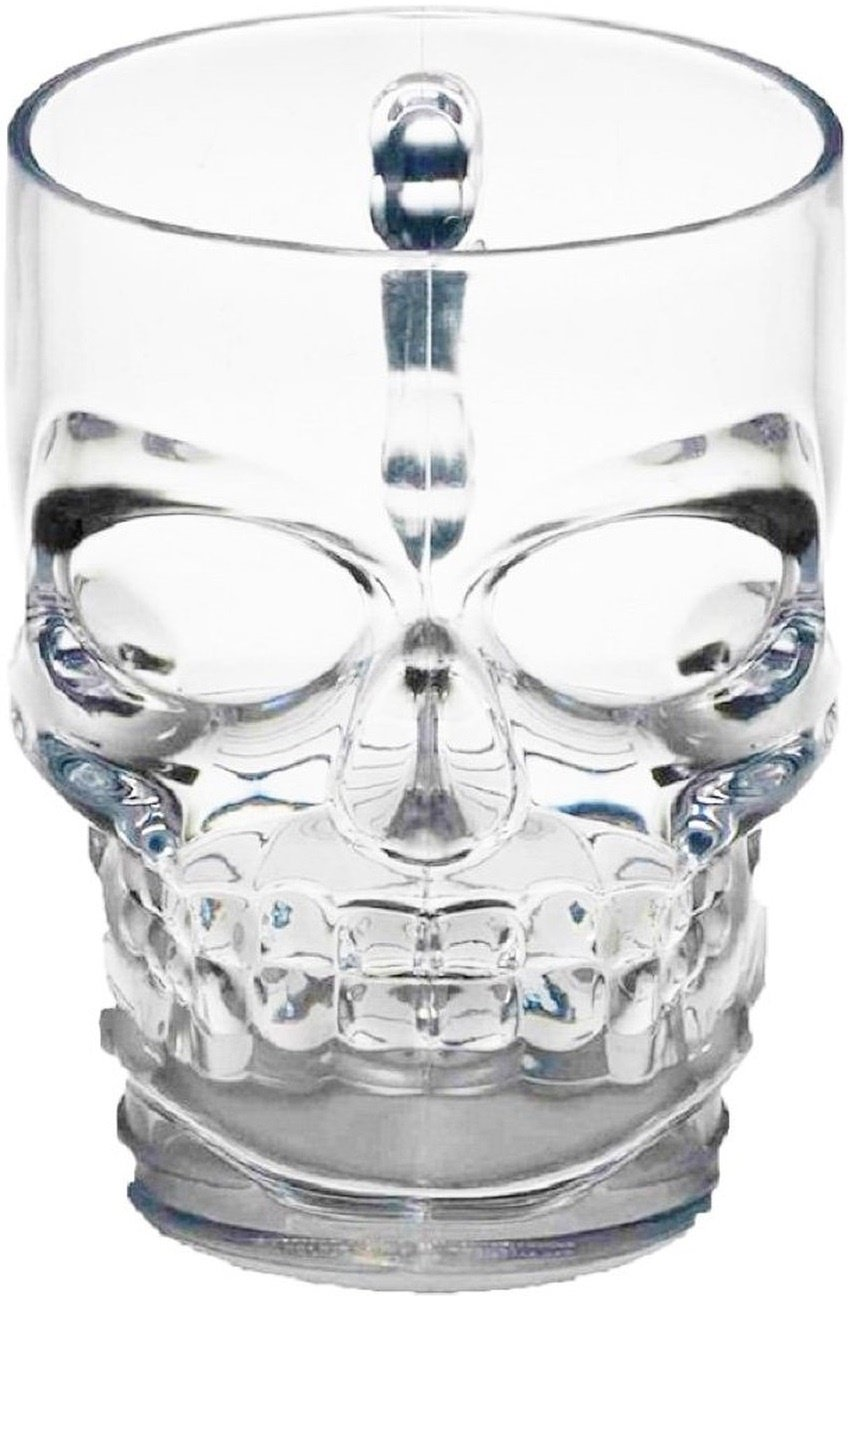 1a139ffcb0b Circleware 07099 Skull Face Beer Glass Mug with Handle, Heavy Base Funny  Entertainment Glassware Drinking Cup for Water, Wine, Juice and Bar Liquor  Dining ...